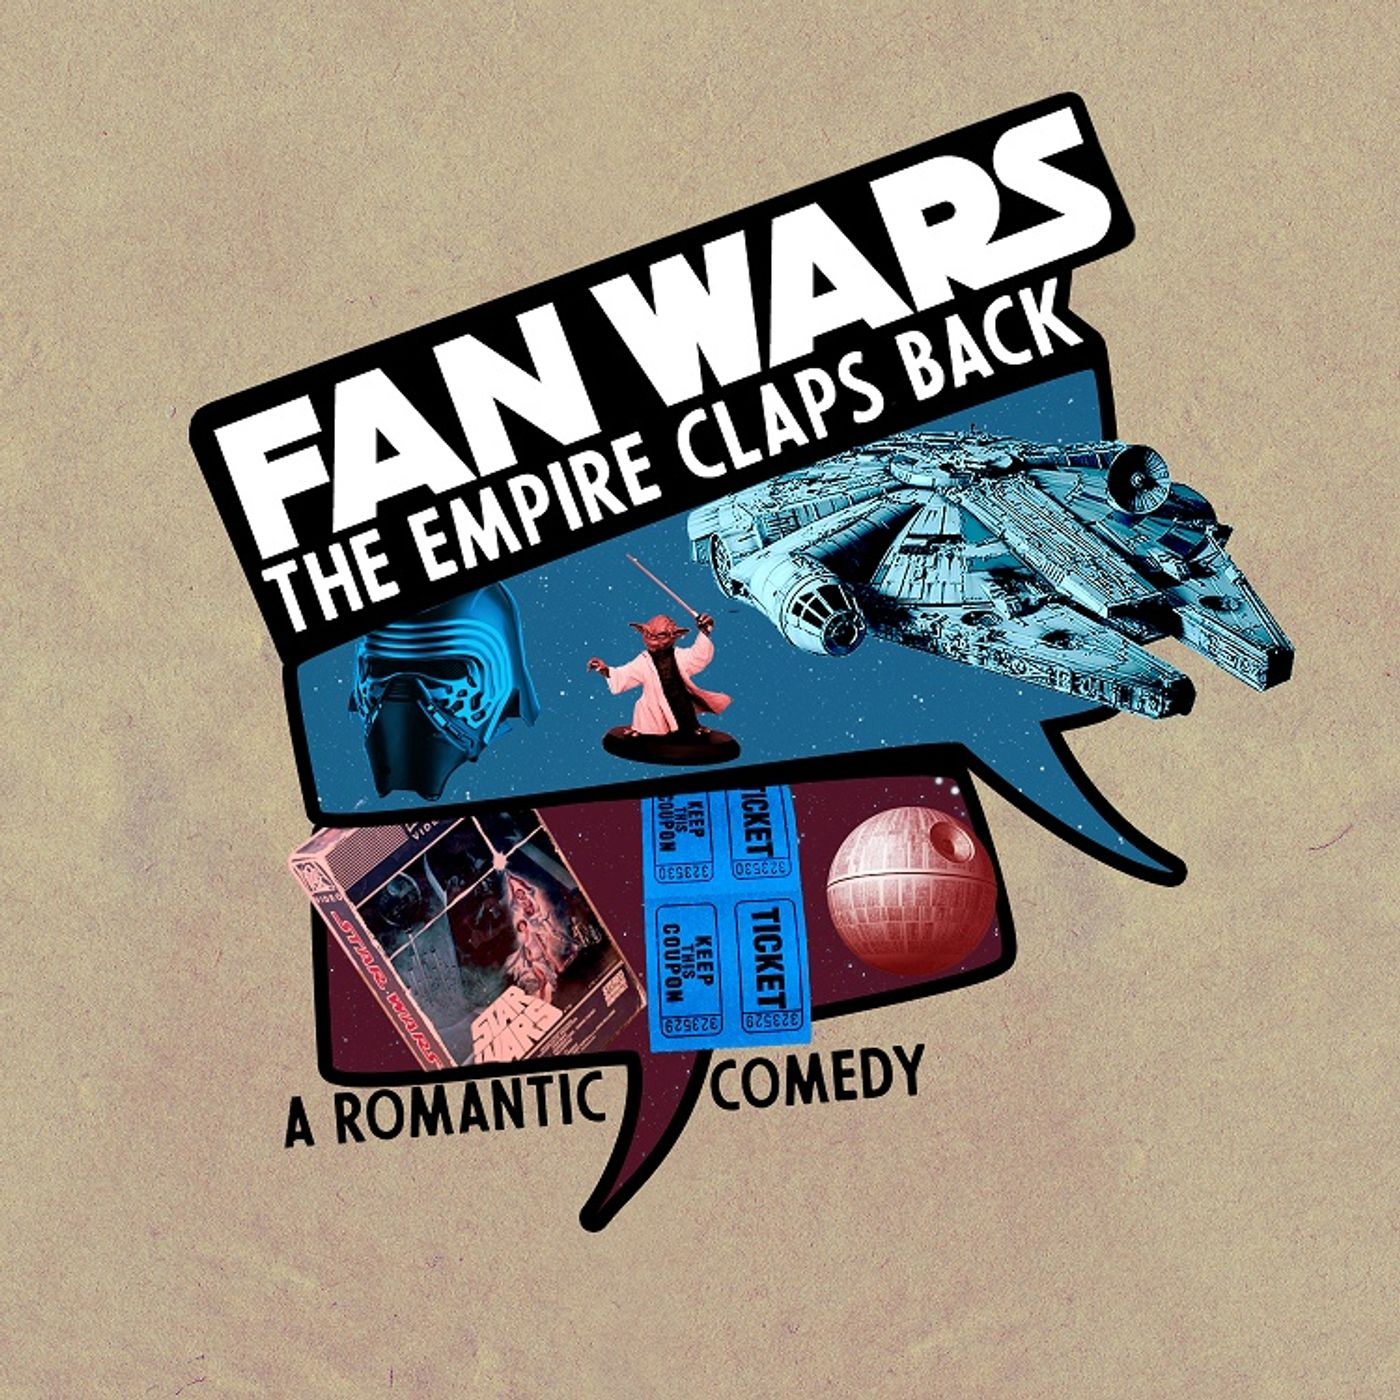 Episode 547 - Fan Wars: The Empire Claps Back